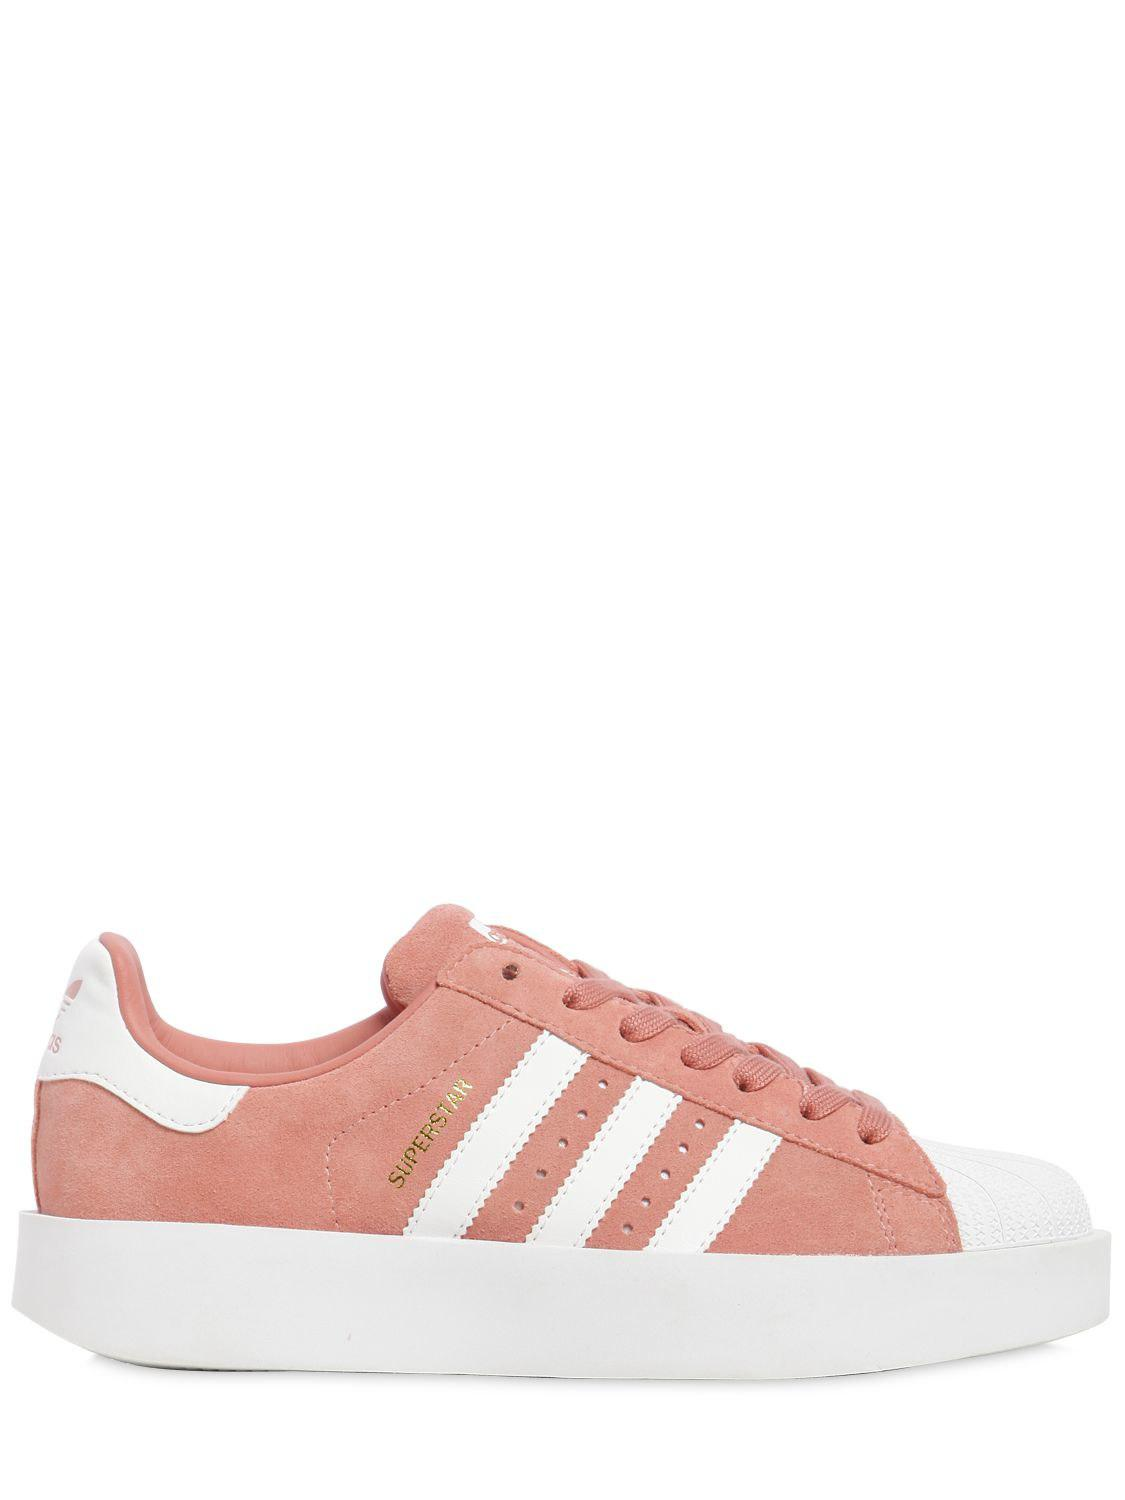 finest selection 37b5a 32501 ... ireland adidas originals superstar bold leather sneakers in pink lyst  f060c 90528